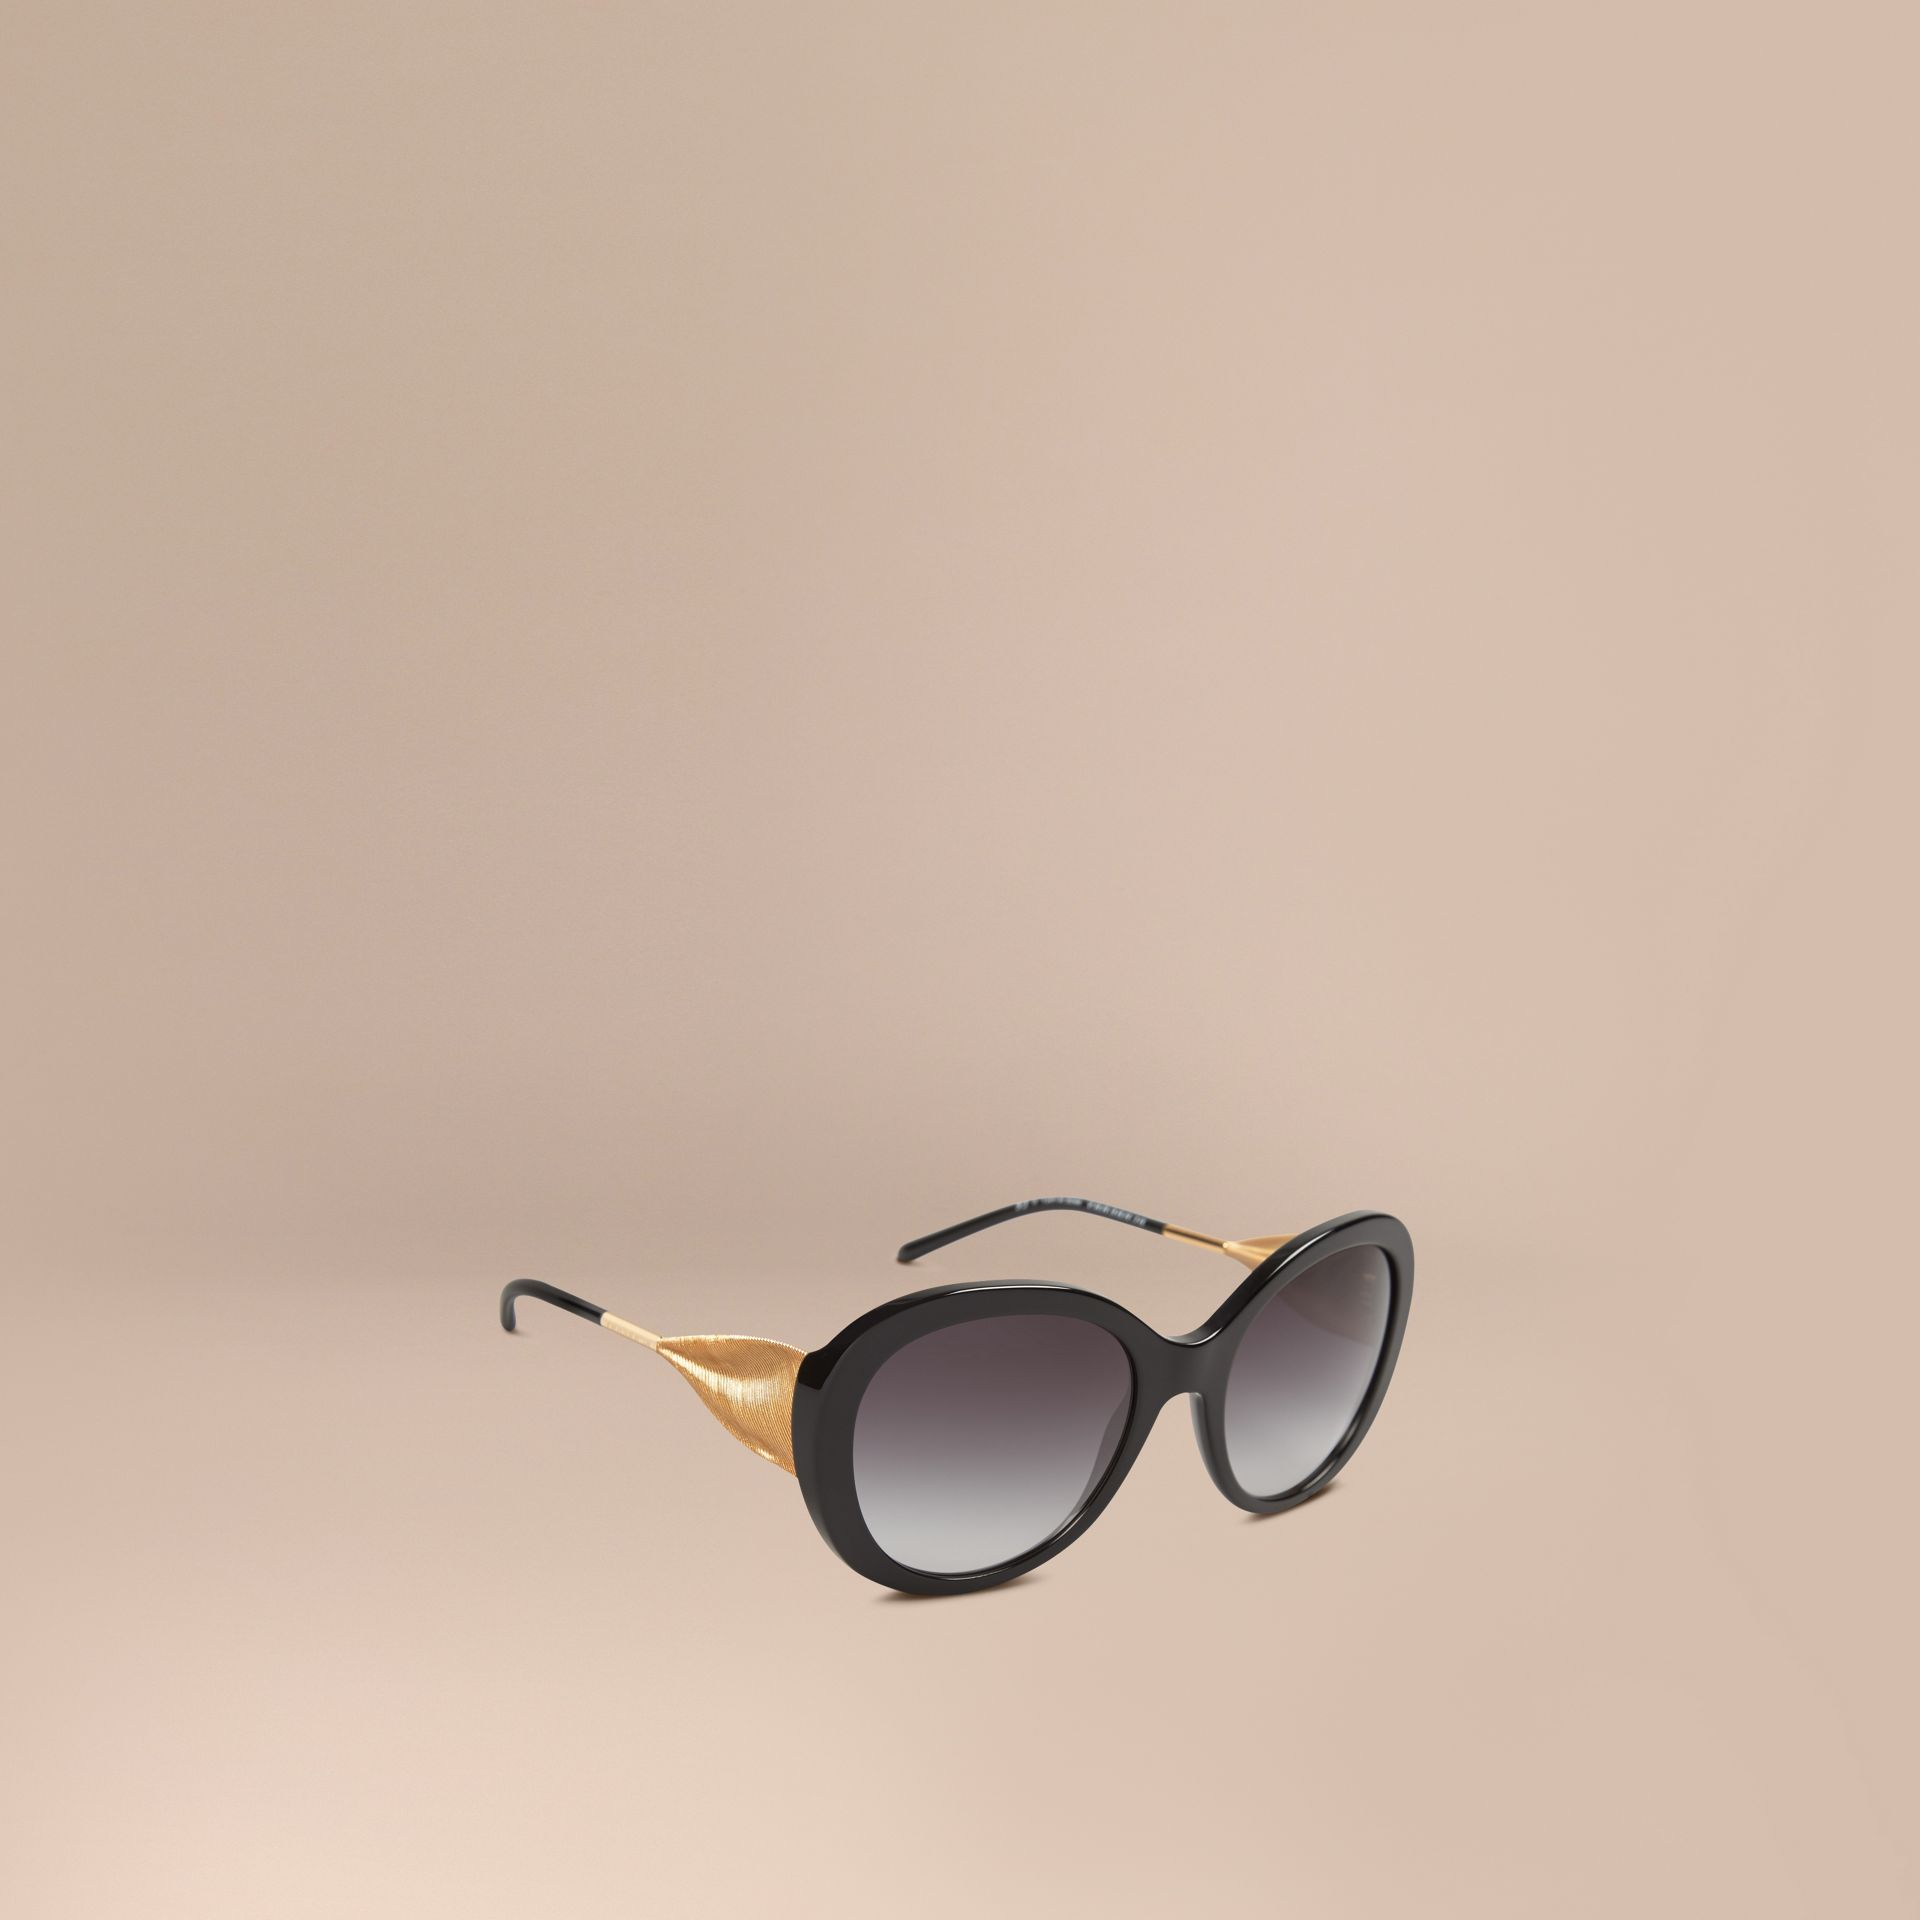 Gabardine Collection Oversize Round Frame Sunglasses in Black - Women | Burberry United States - gallery image 1